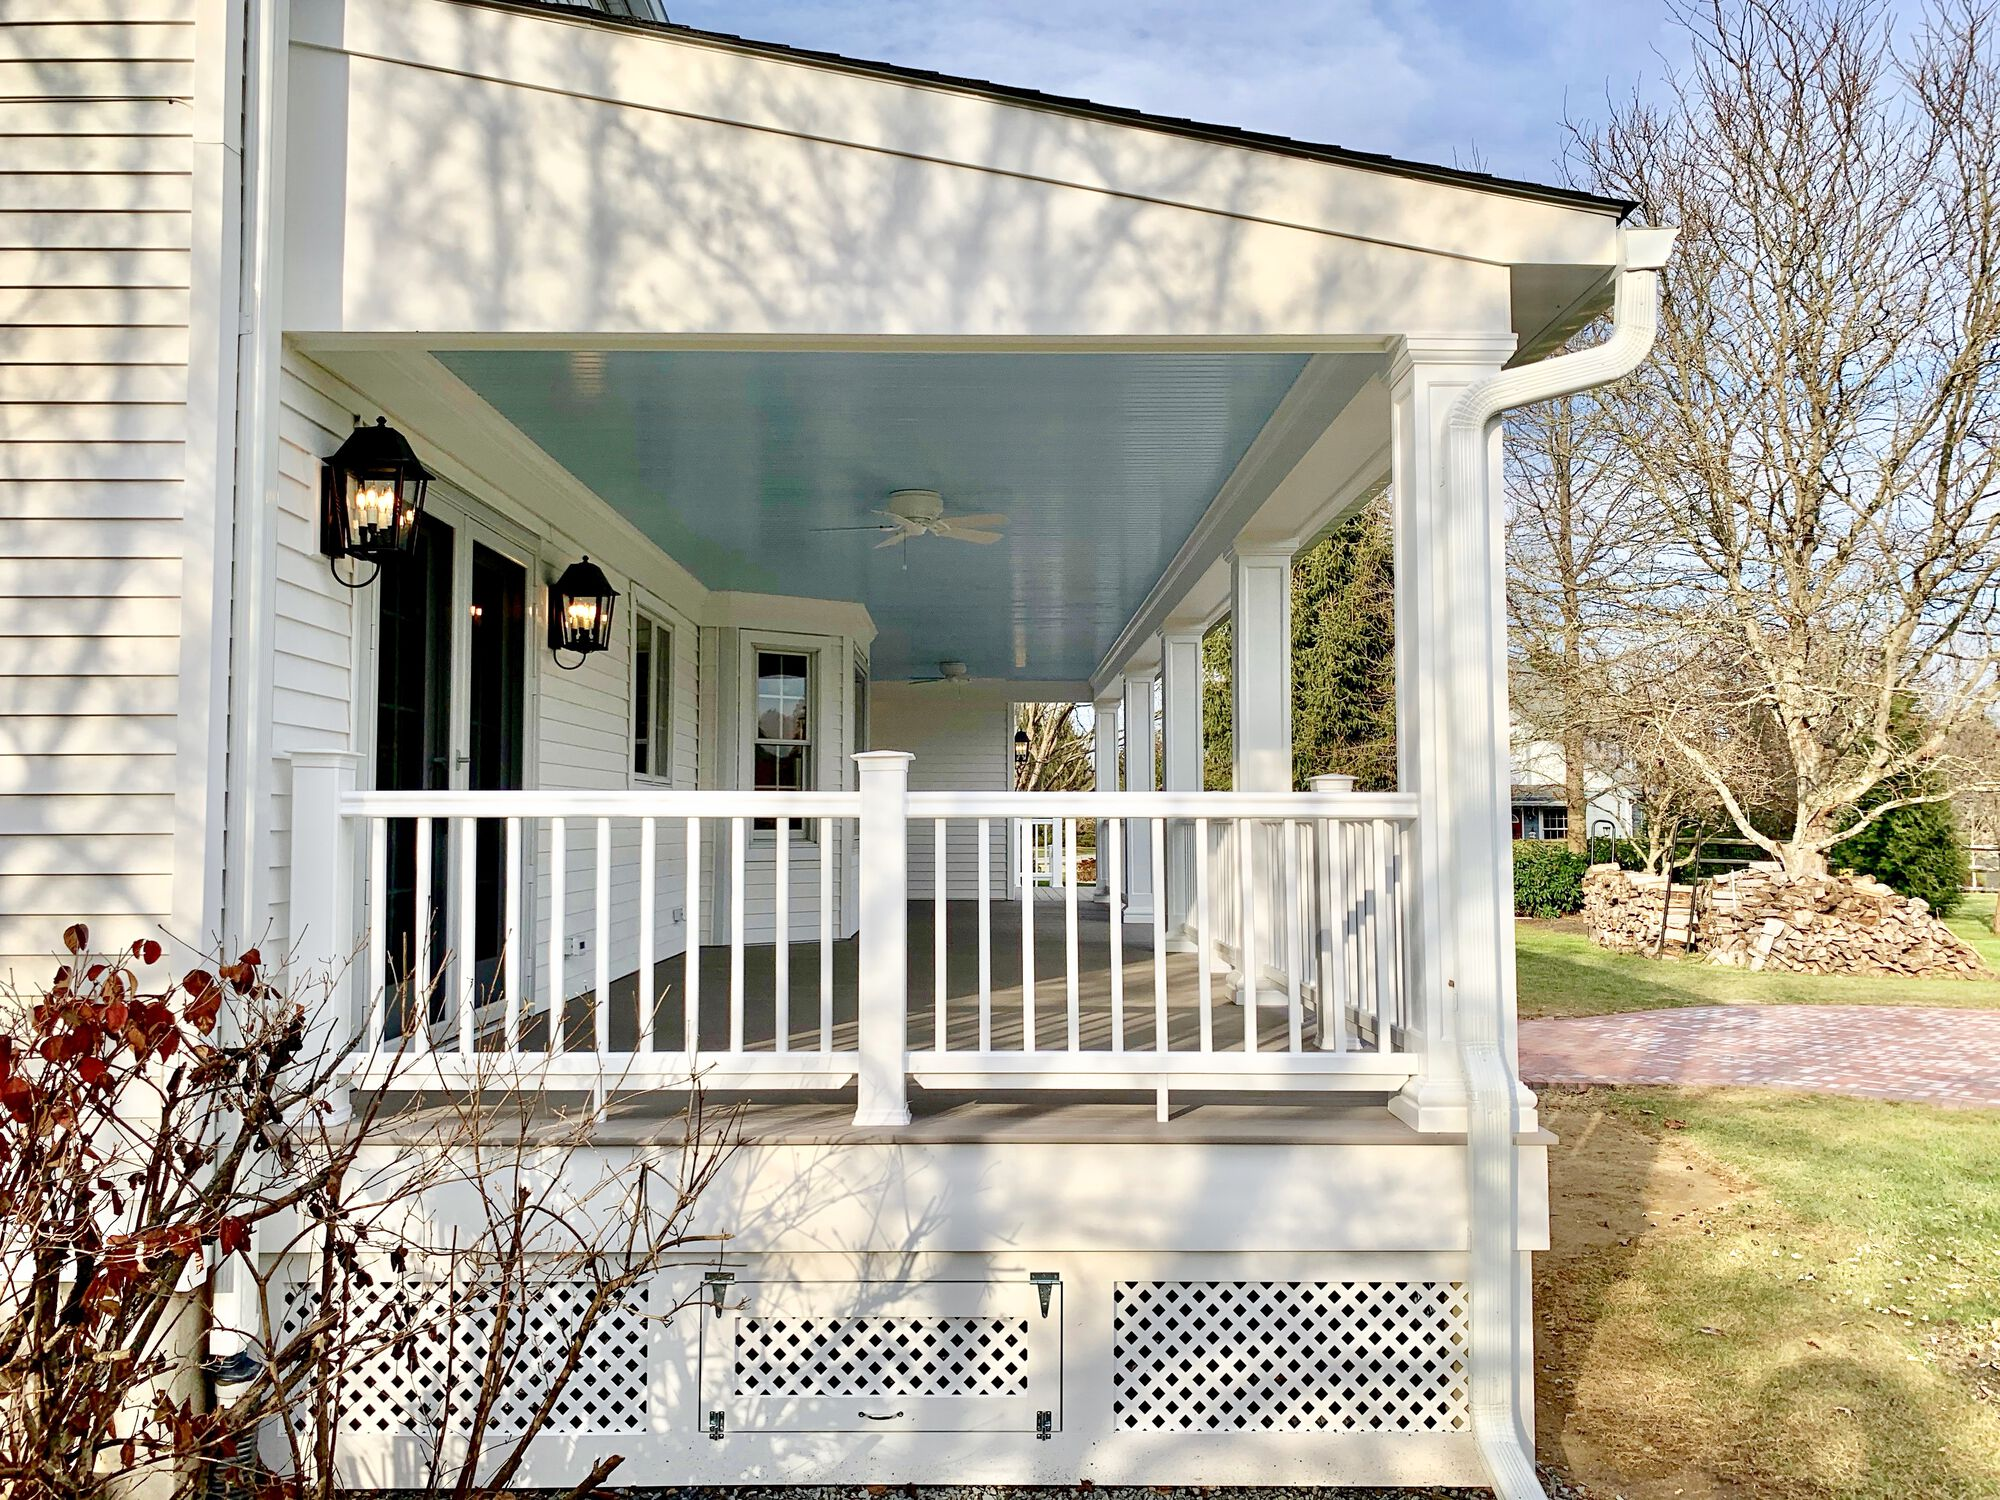 Porch Addition with Composite Decking and Trim in Washington, Warren County NJ